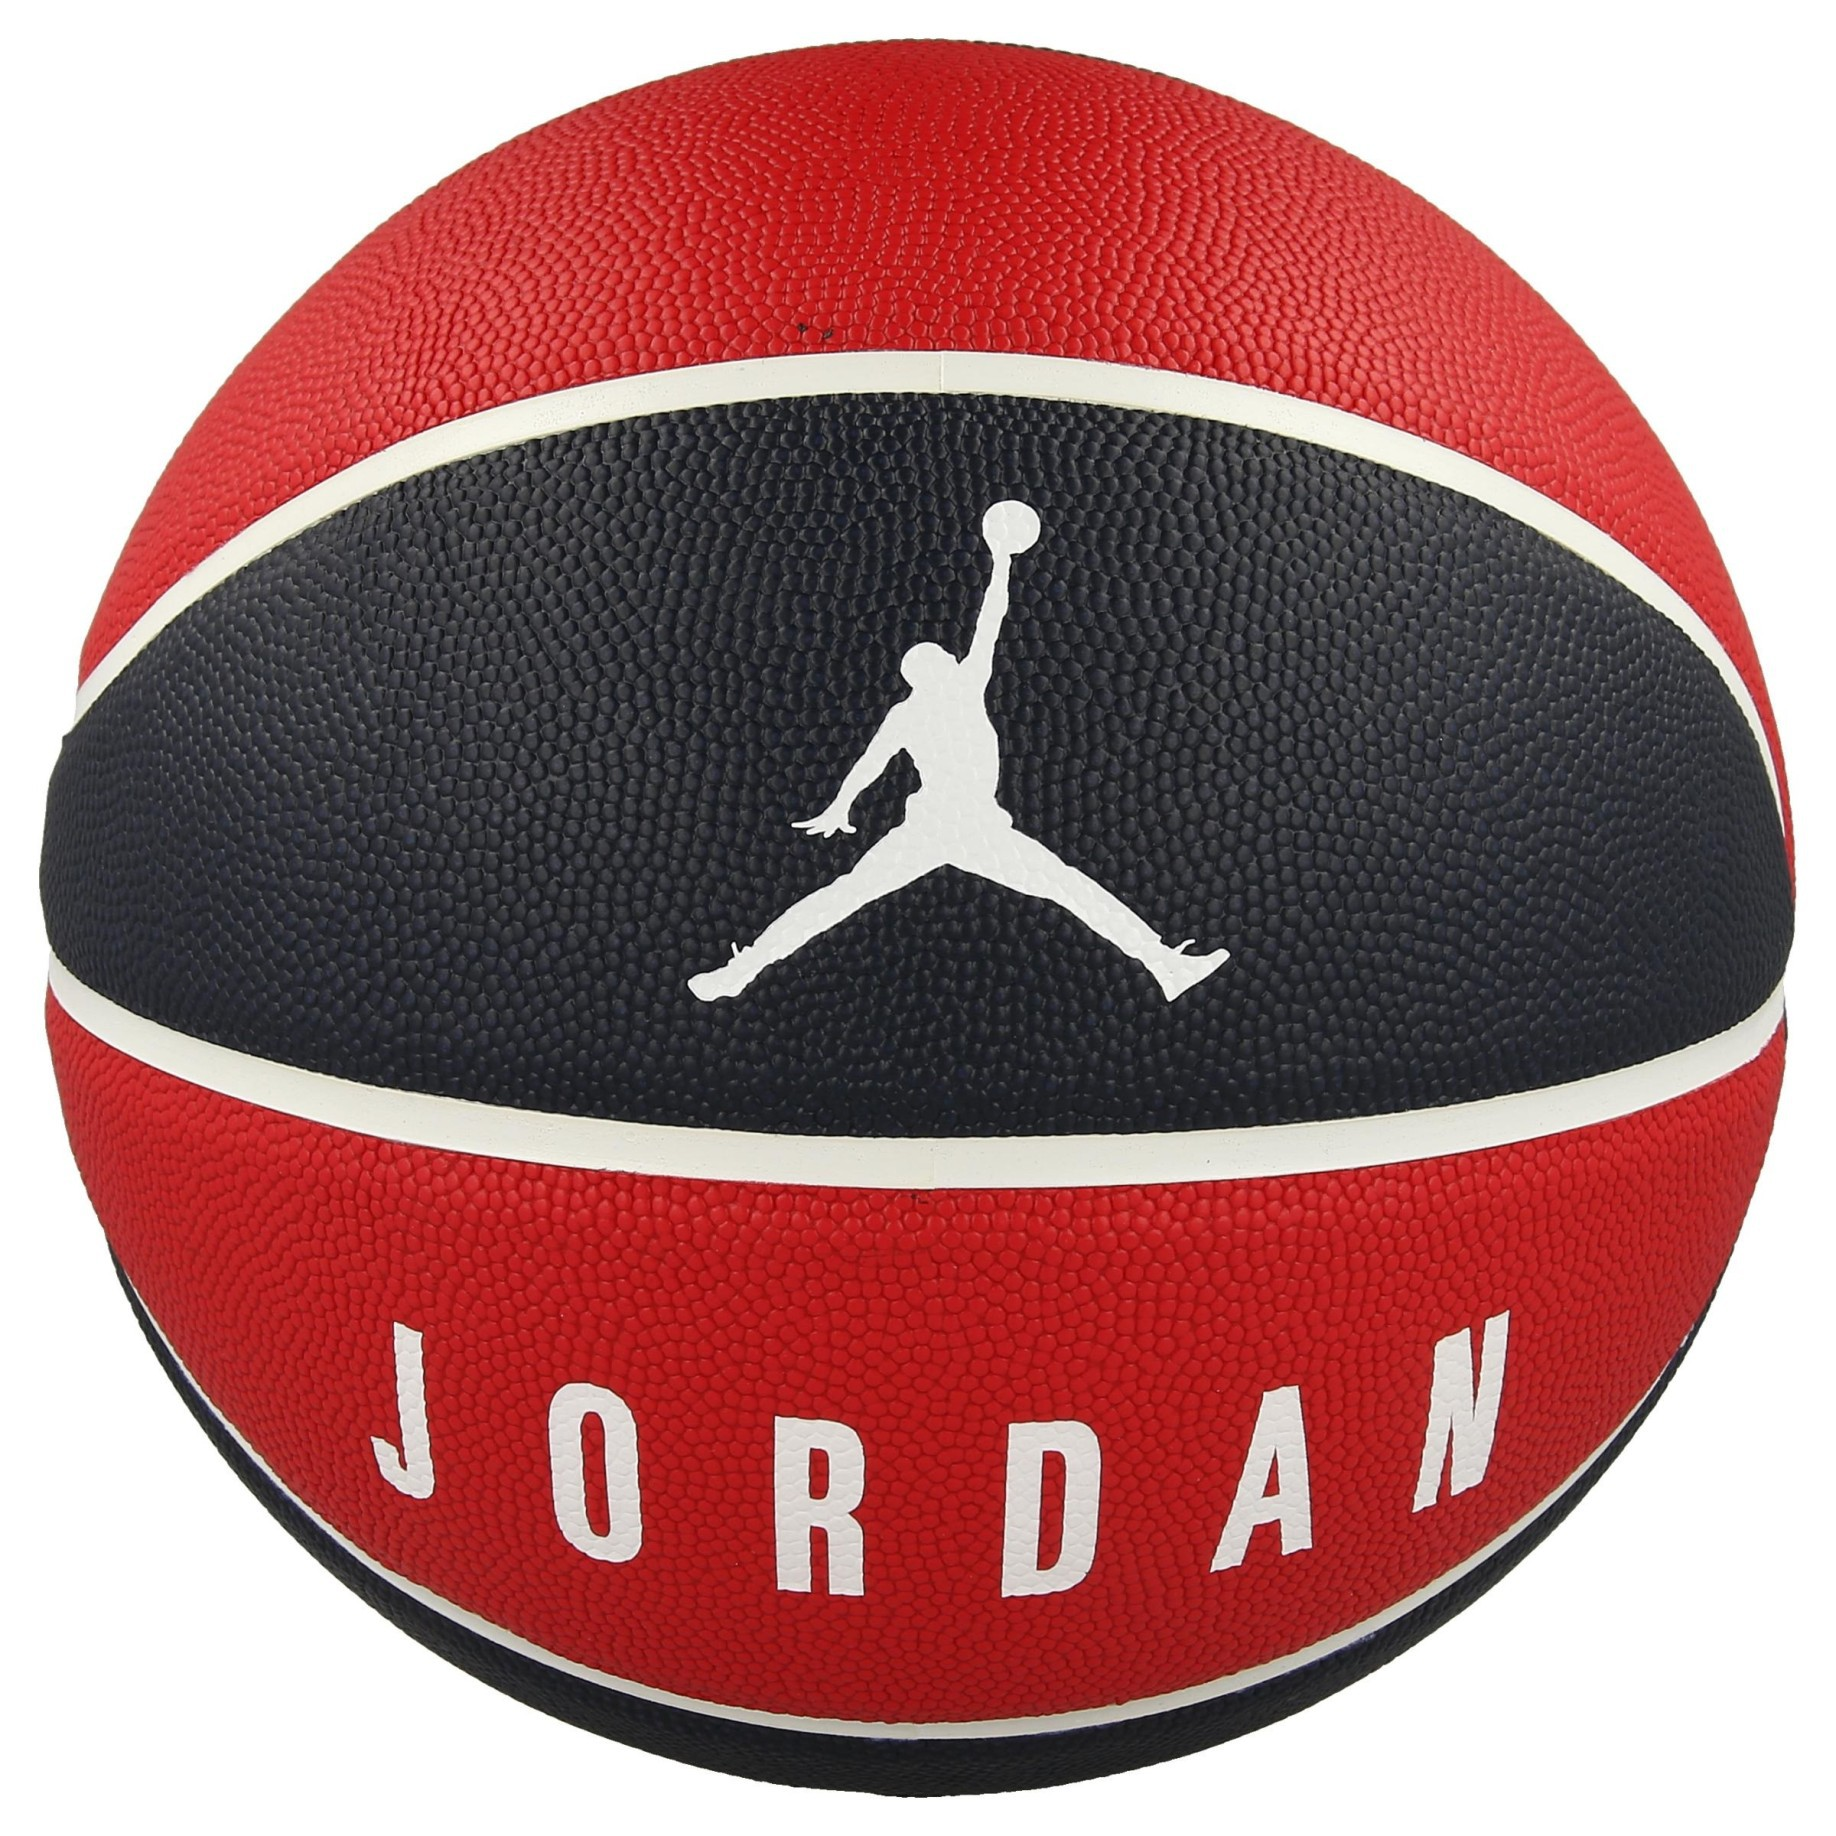 meilleures baskets 5ec52 92985 Ball Basketball Jordan Ultimate